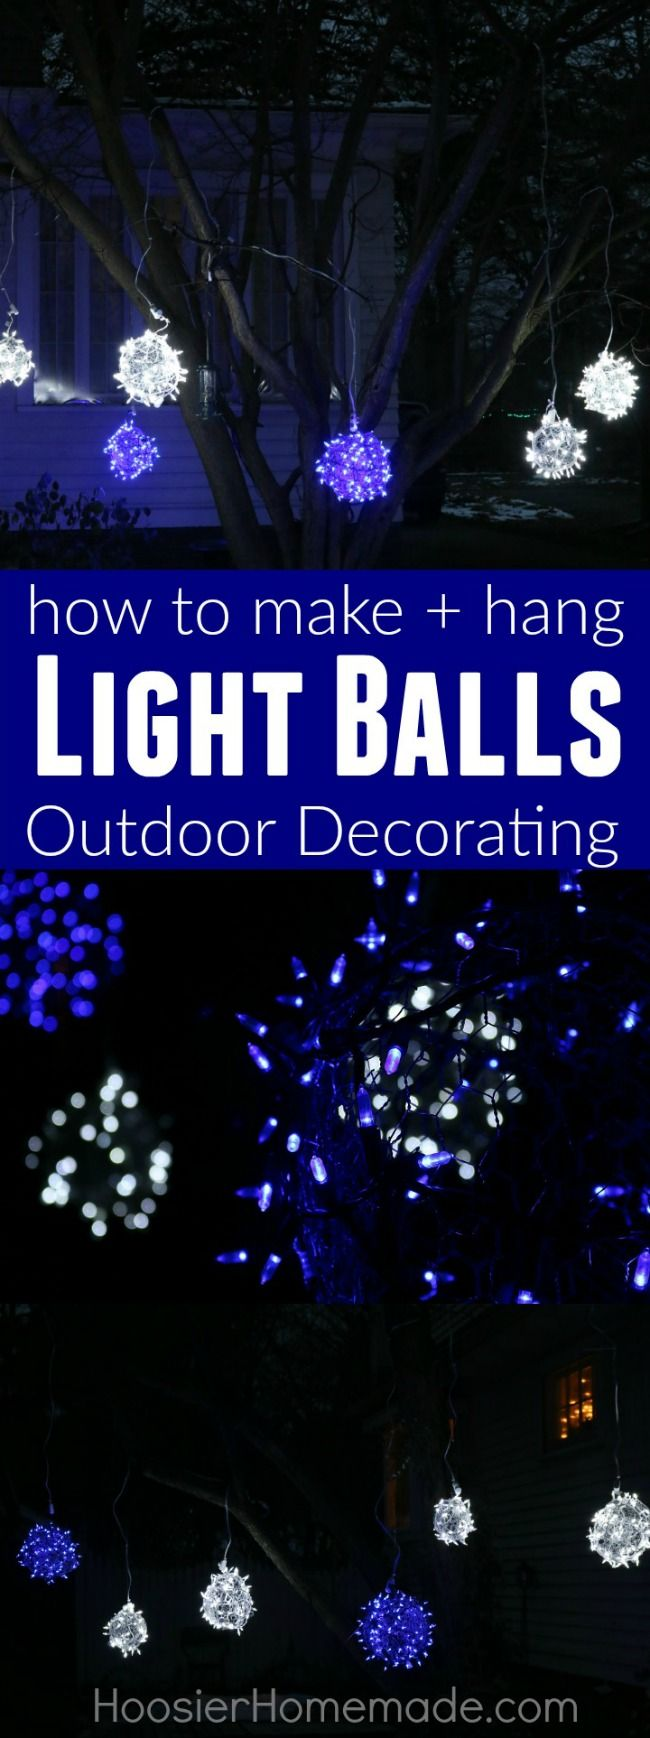 how to make christmas light balls holiday inspiration - Outdoor Christmas Lights Decorations